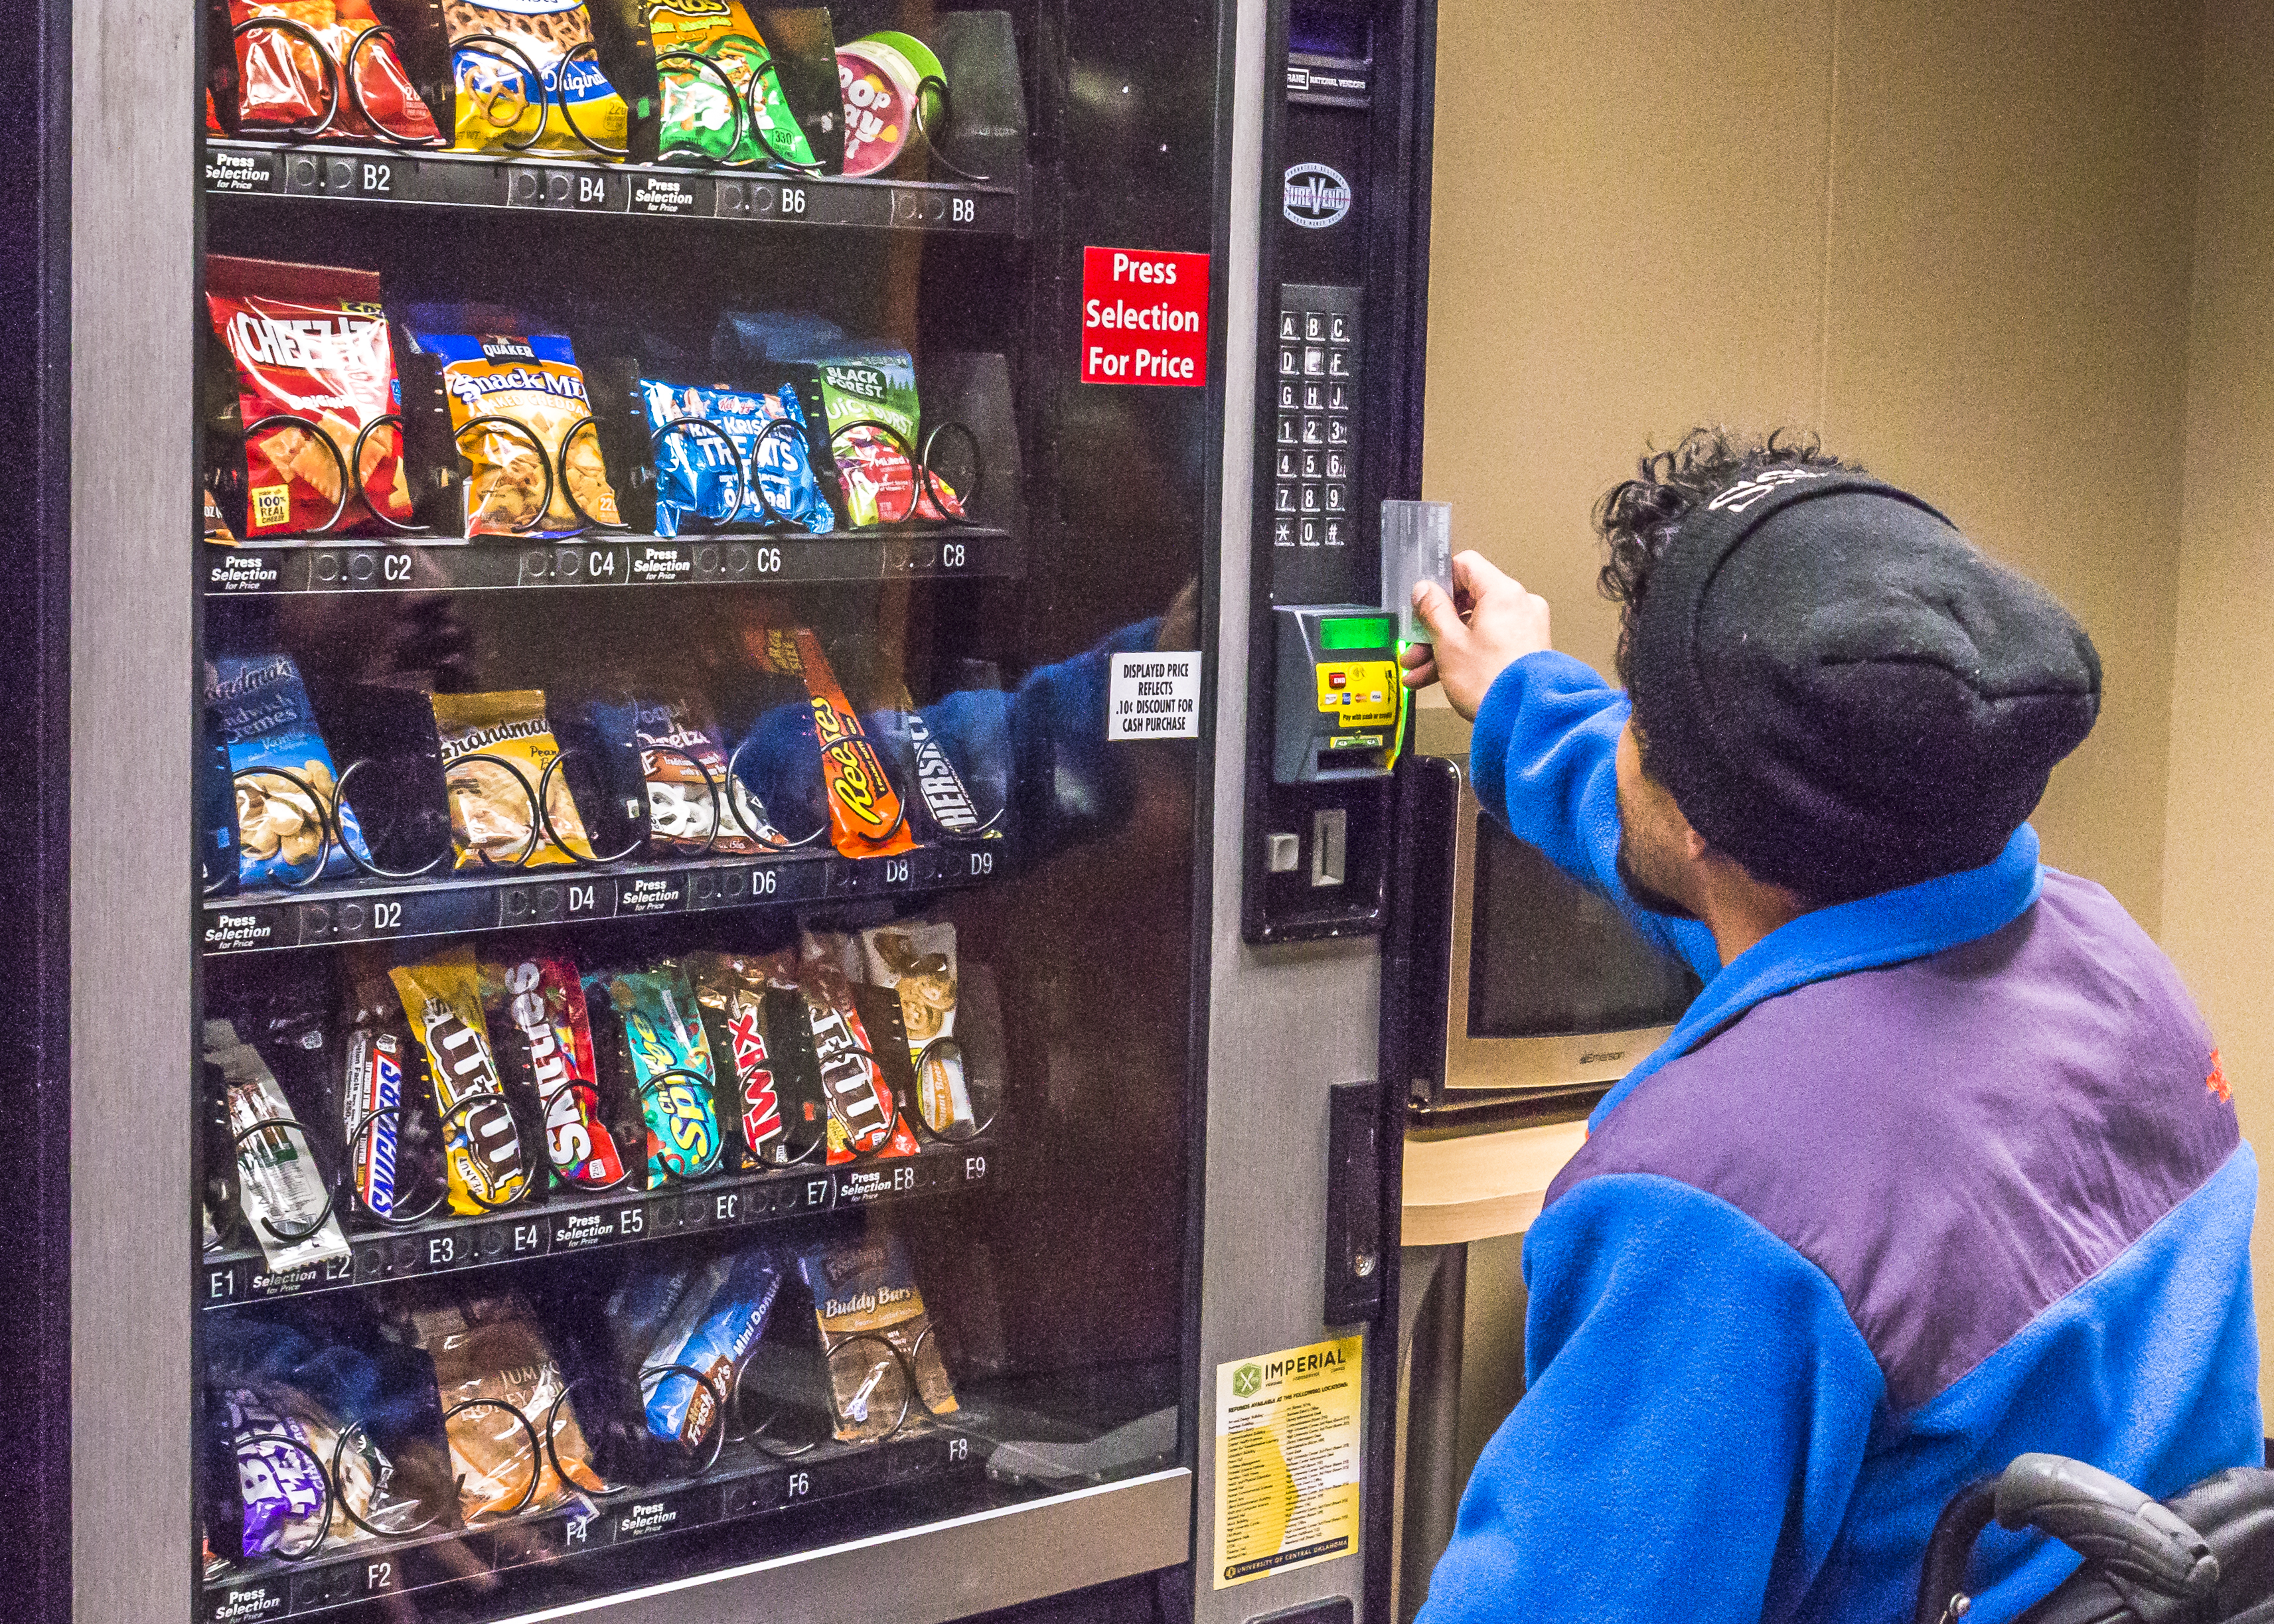 Expired Food Found In Campus Vending Machines